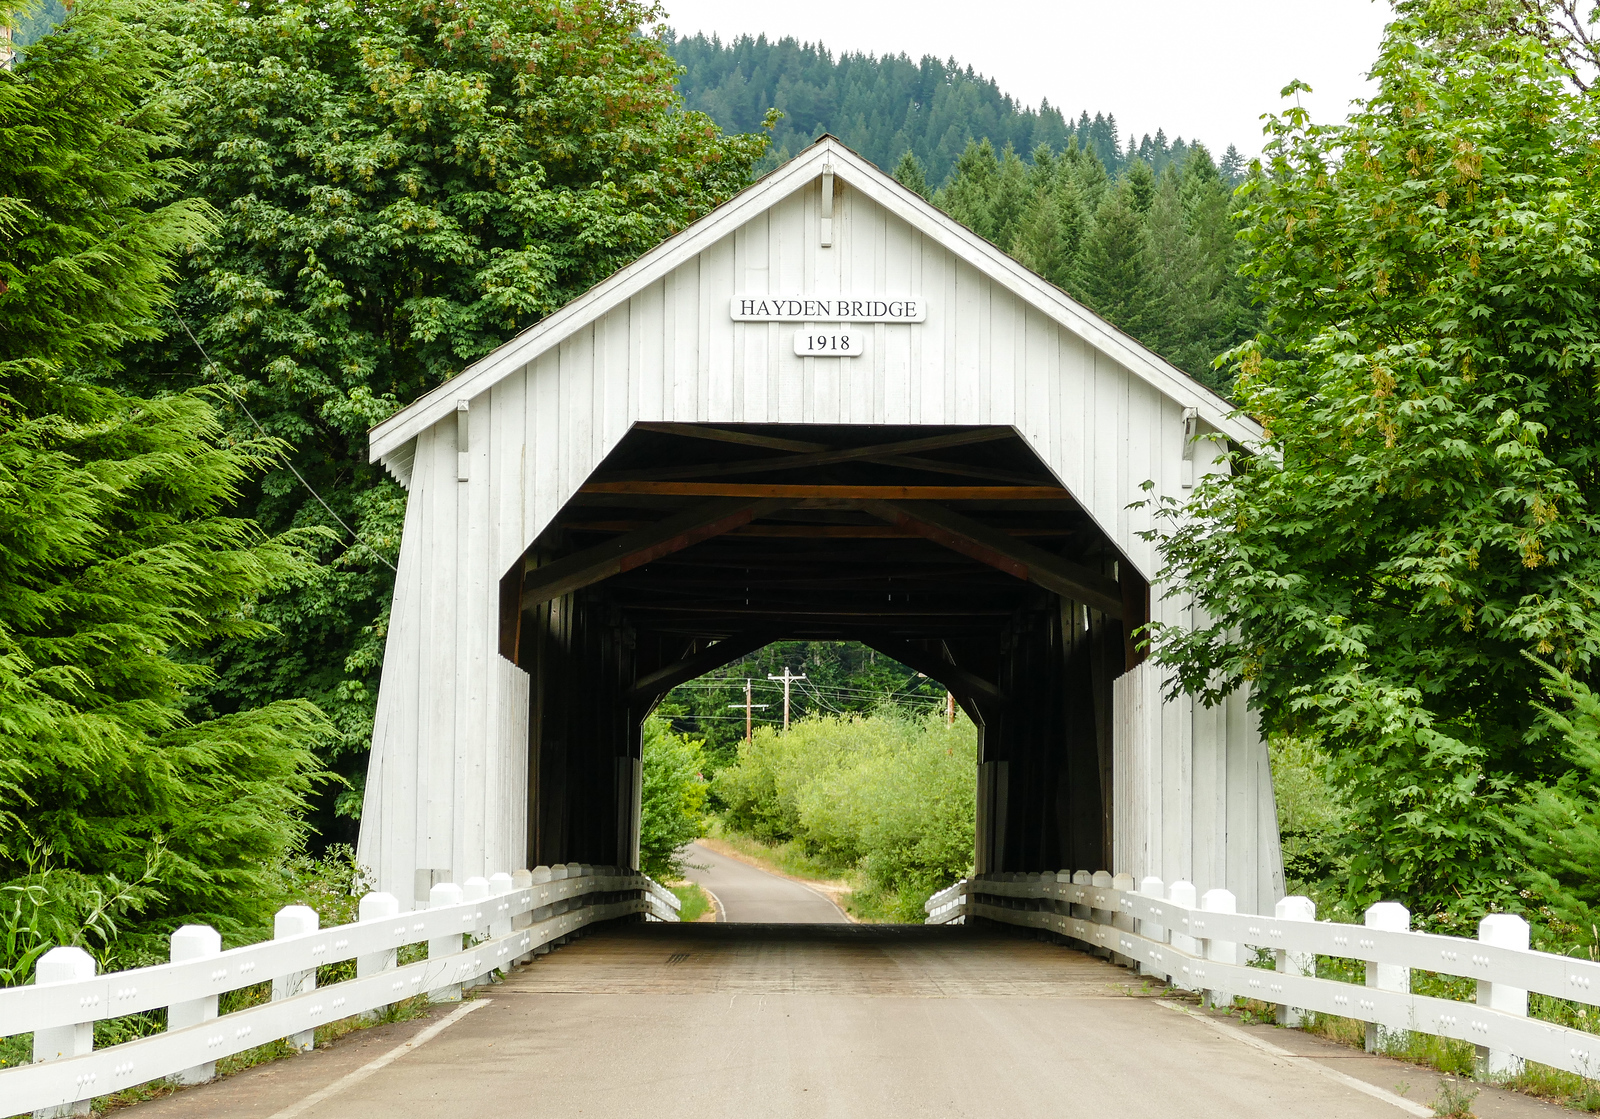 A white covered bridge surrounded by green trees in Oregon.